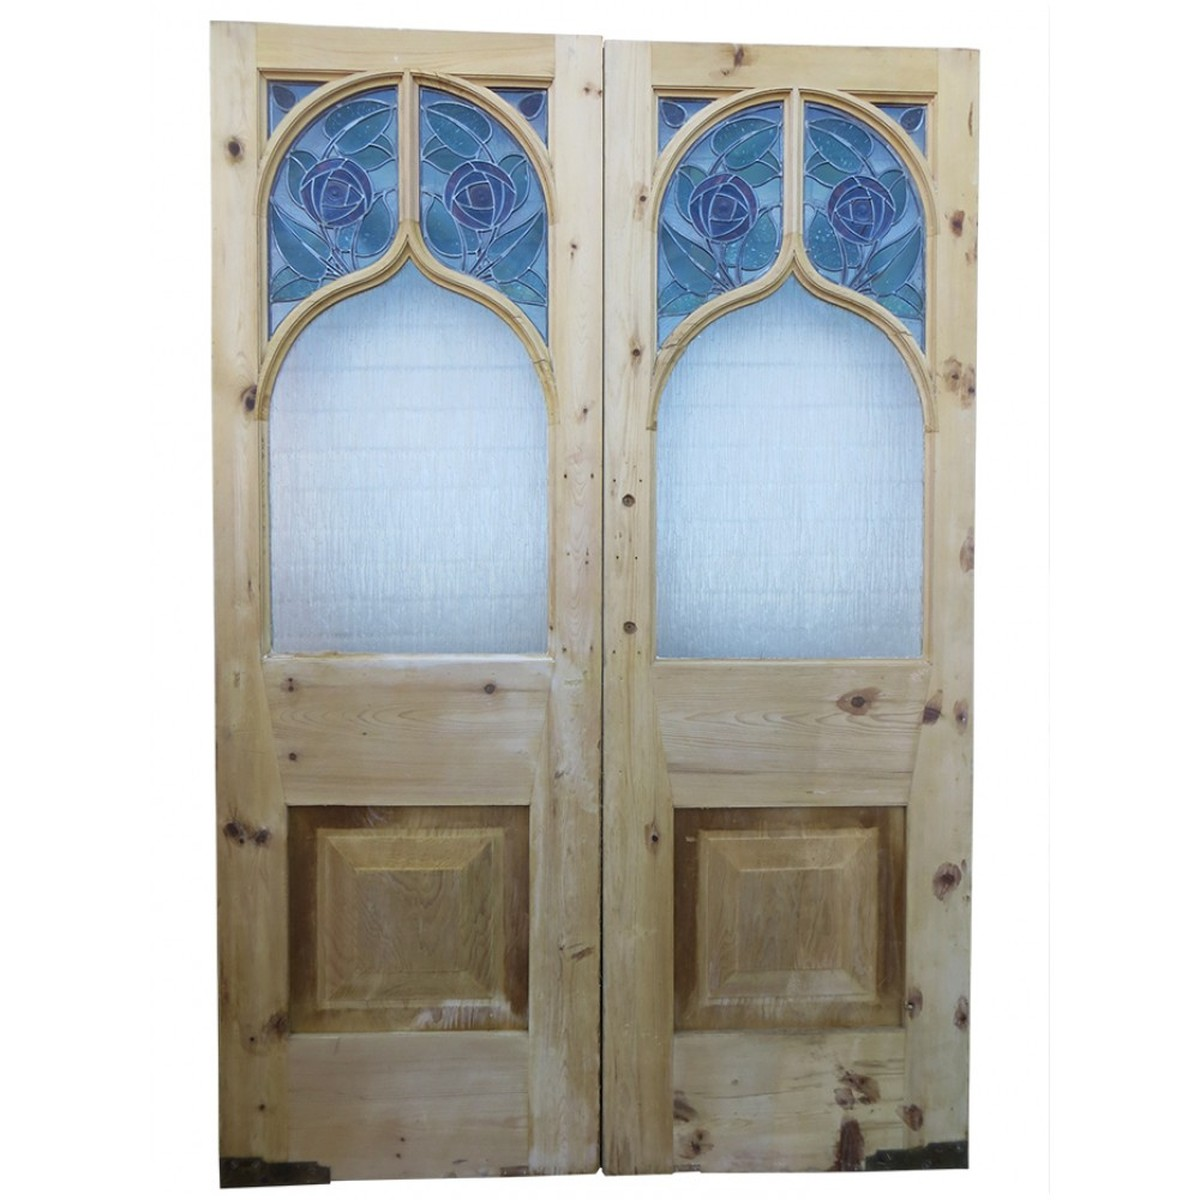 Secondhand vintage and reclaimed doors and windows for Double doors for sale